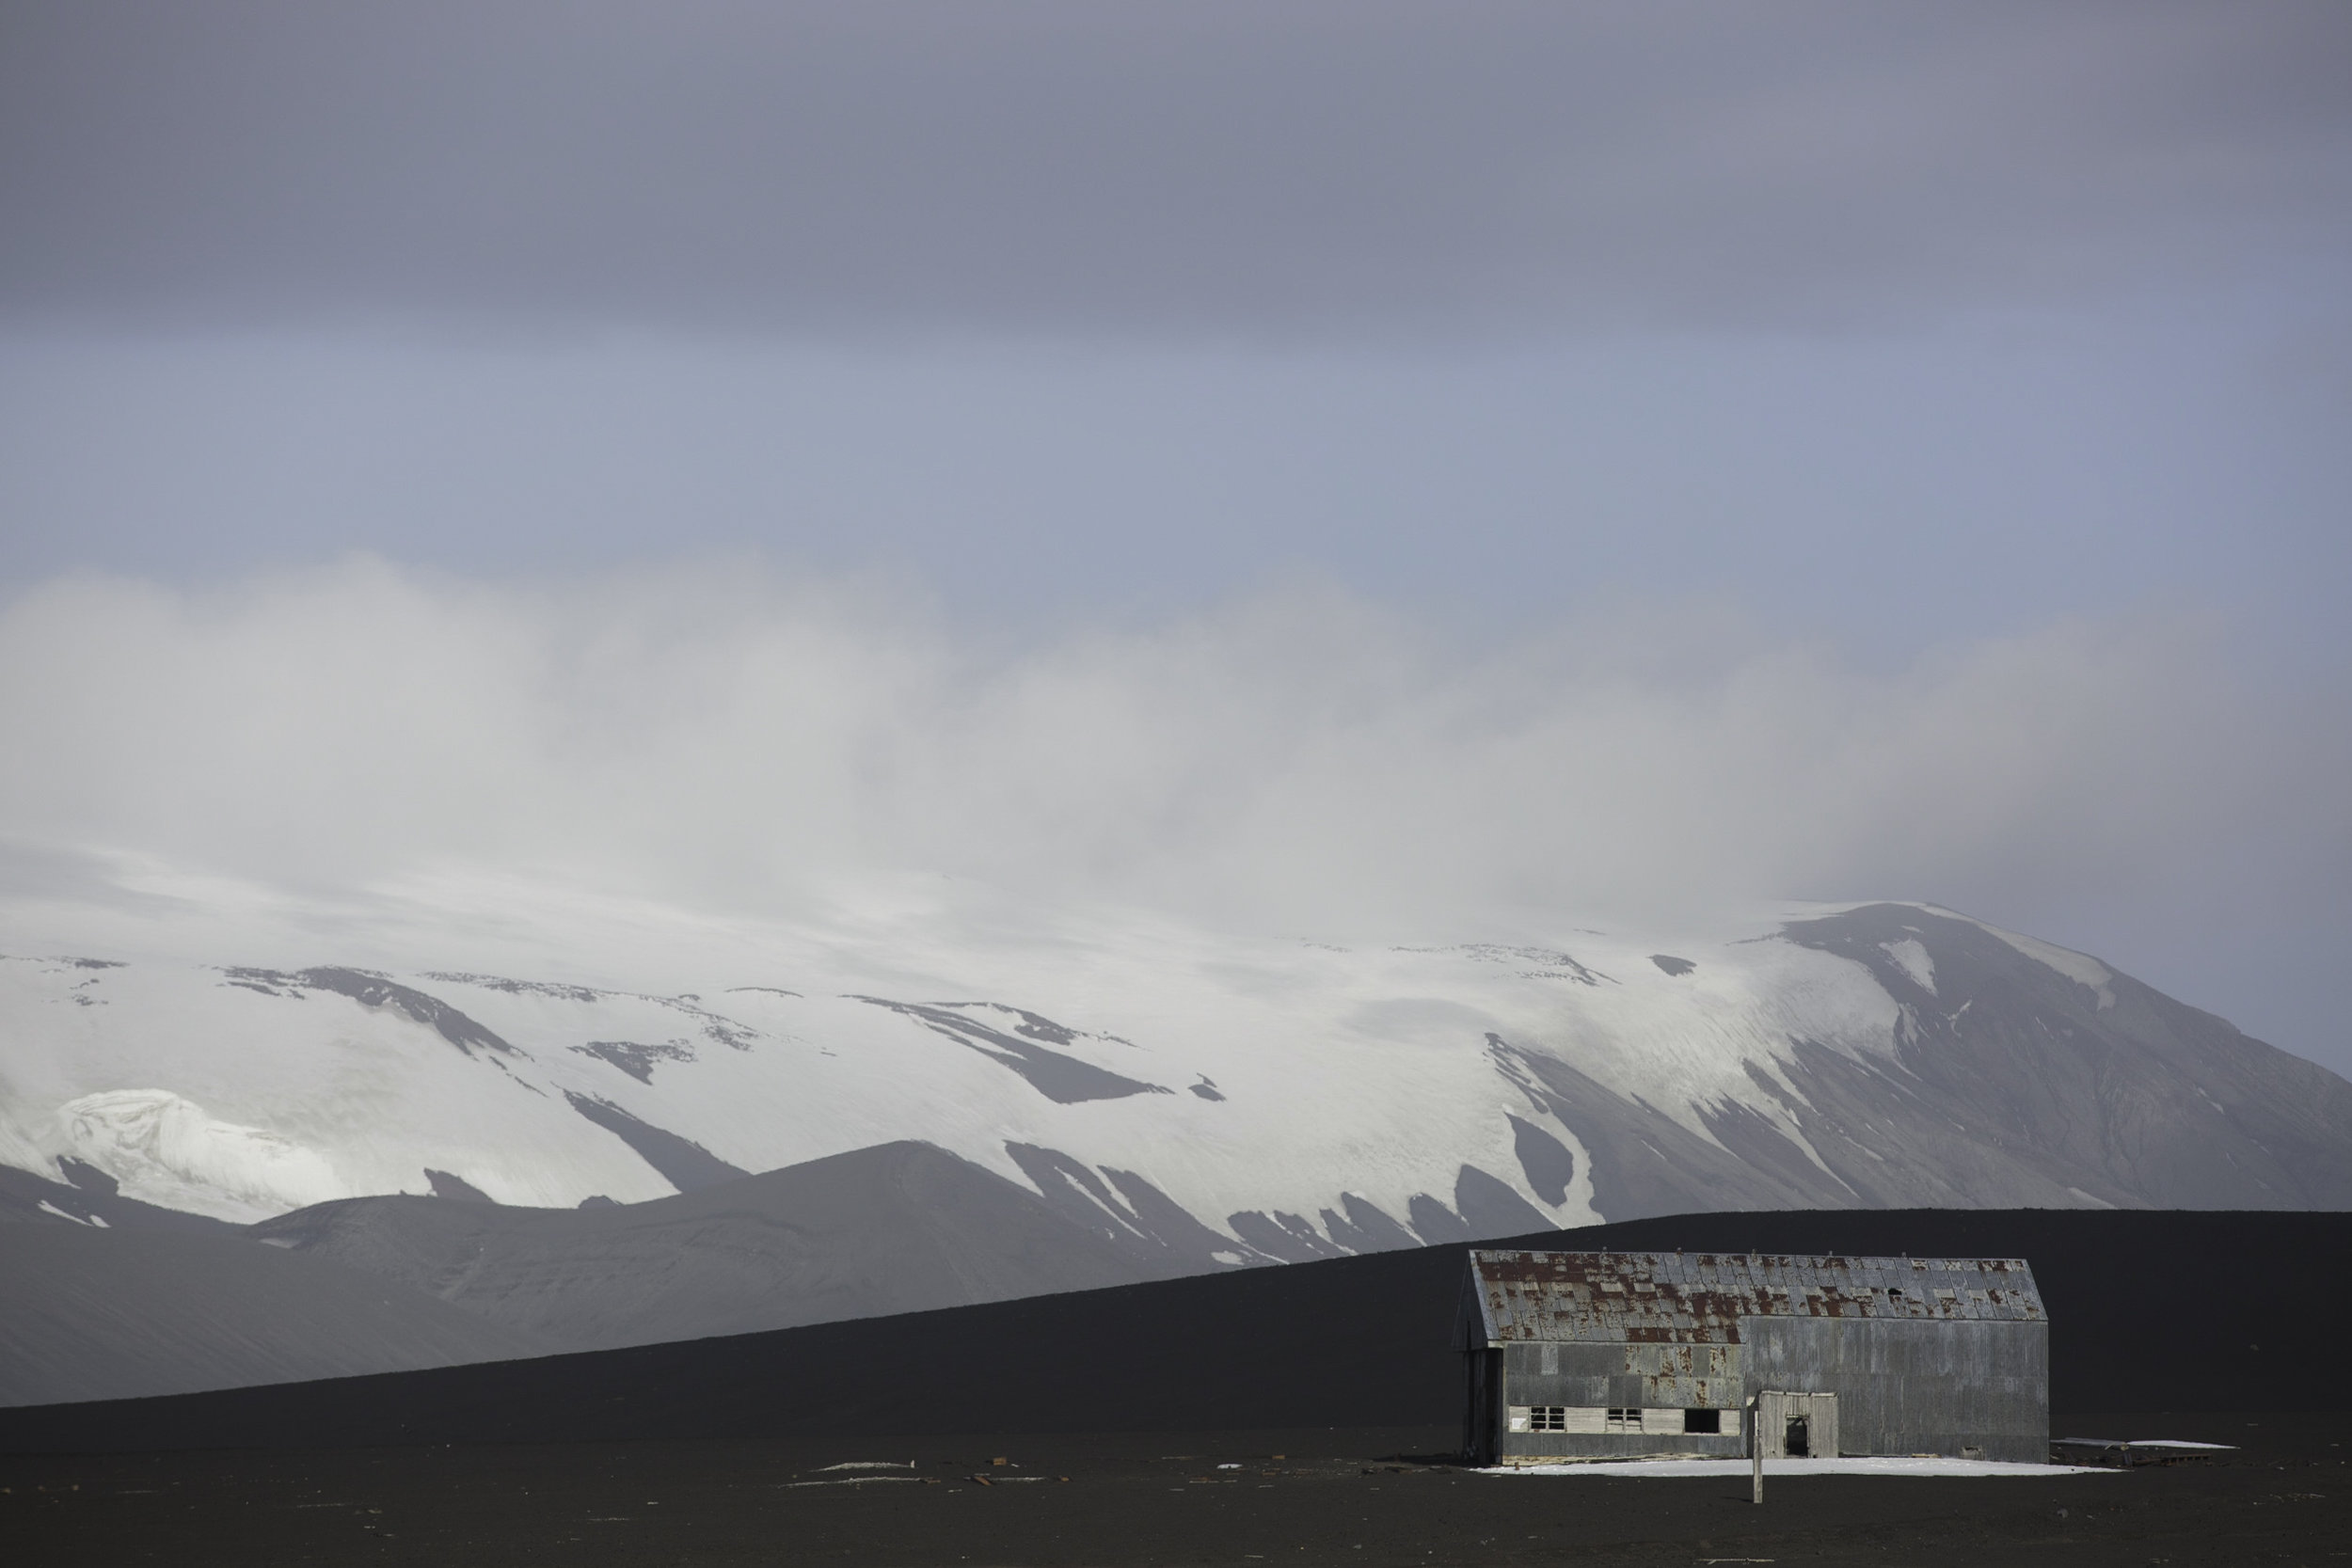 An old airplane hanger built by the British lies abandoned on Deception Island.